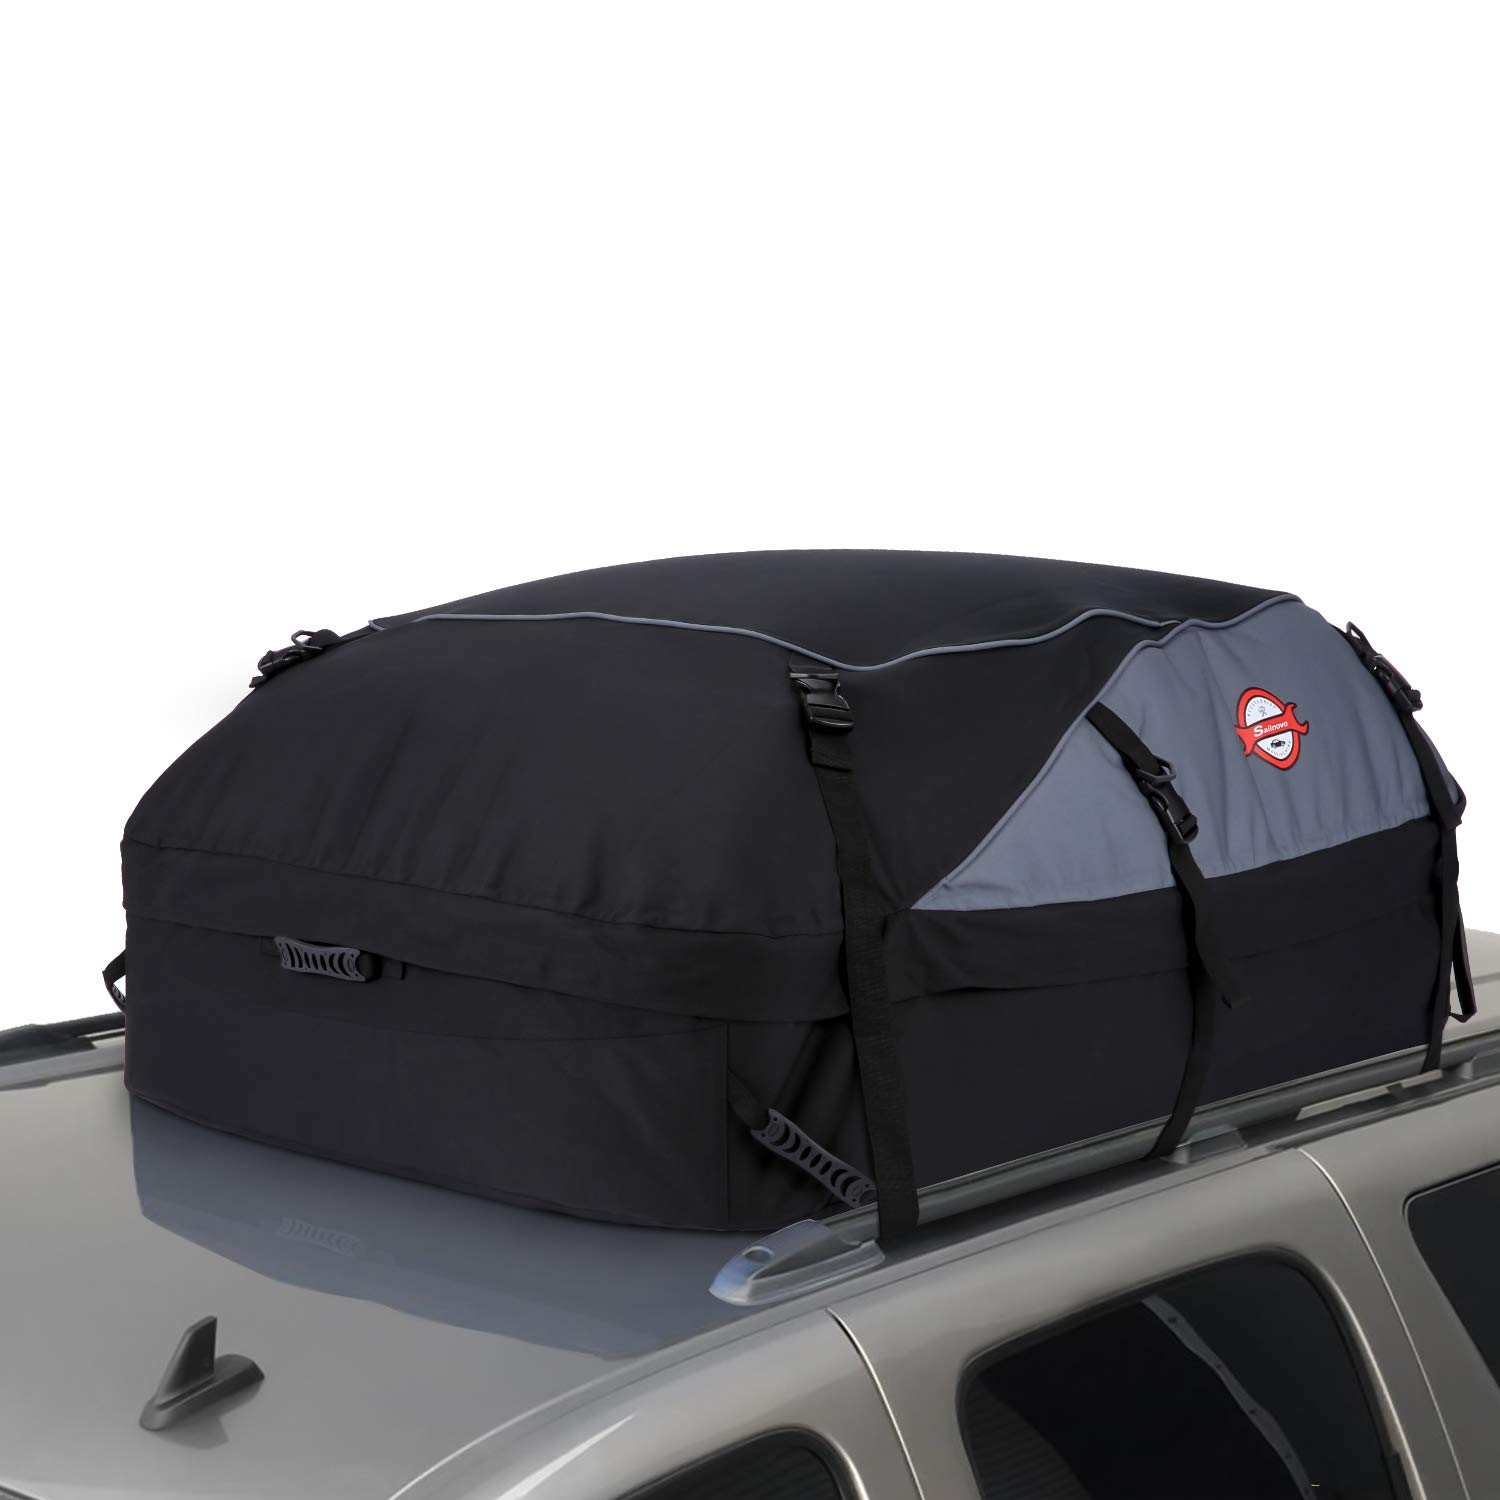 20 Cubic Feet Thickened Car Cargo Roof Bag- Waterproof Universal Soft Rooftop Bag Luggage Carriers for Car with/Without Racks by Xuliyme